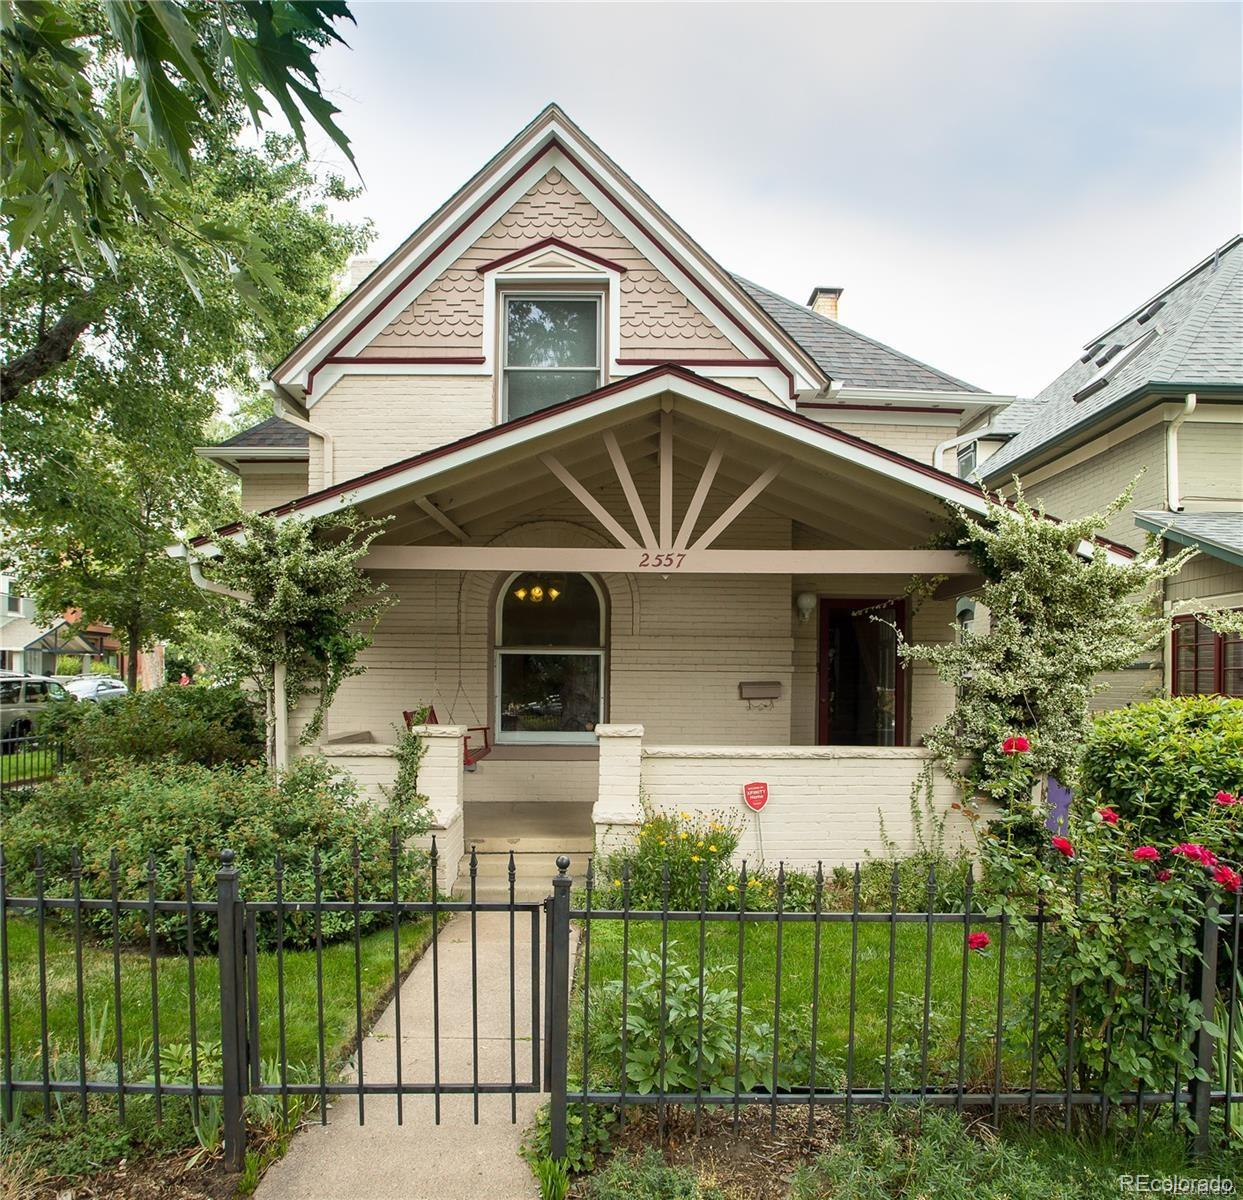 2557 W 33rd Avenue Property Photo - Denver, CO real estate listing